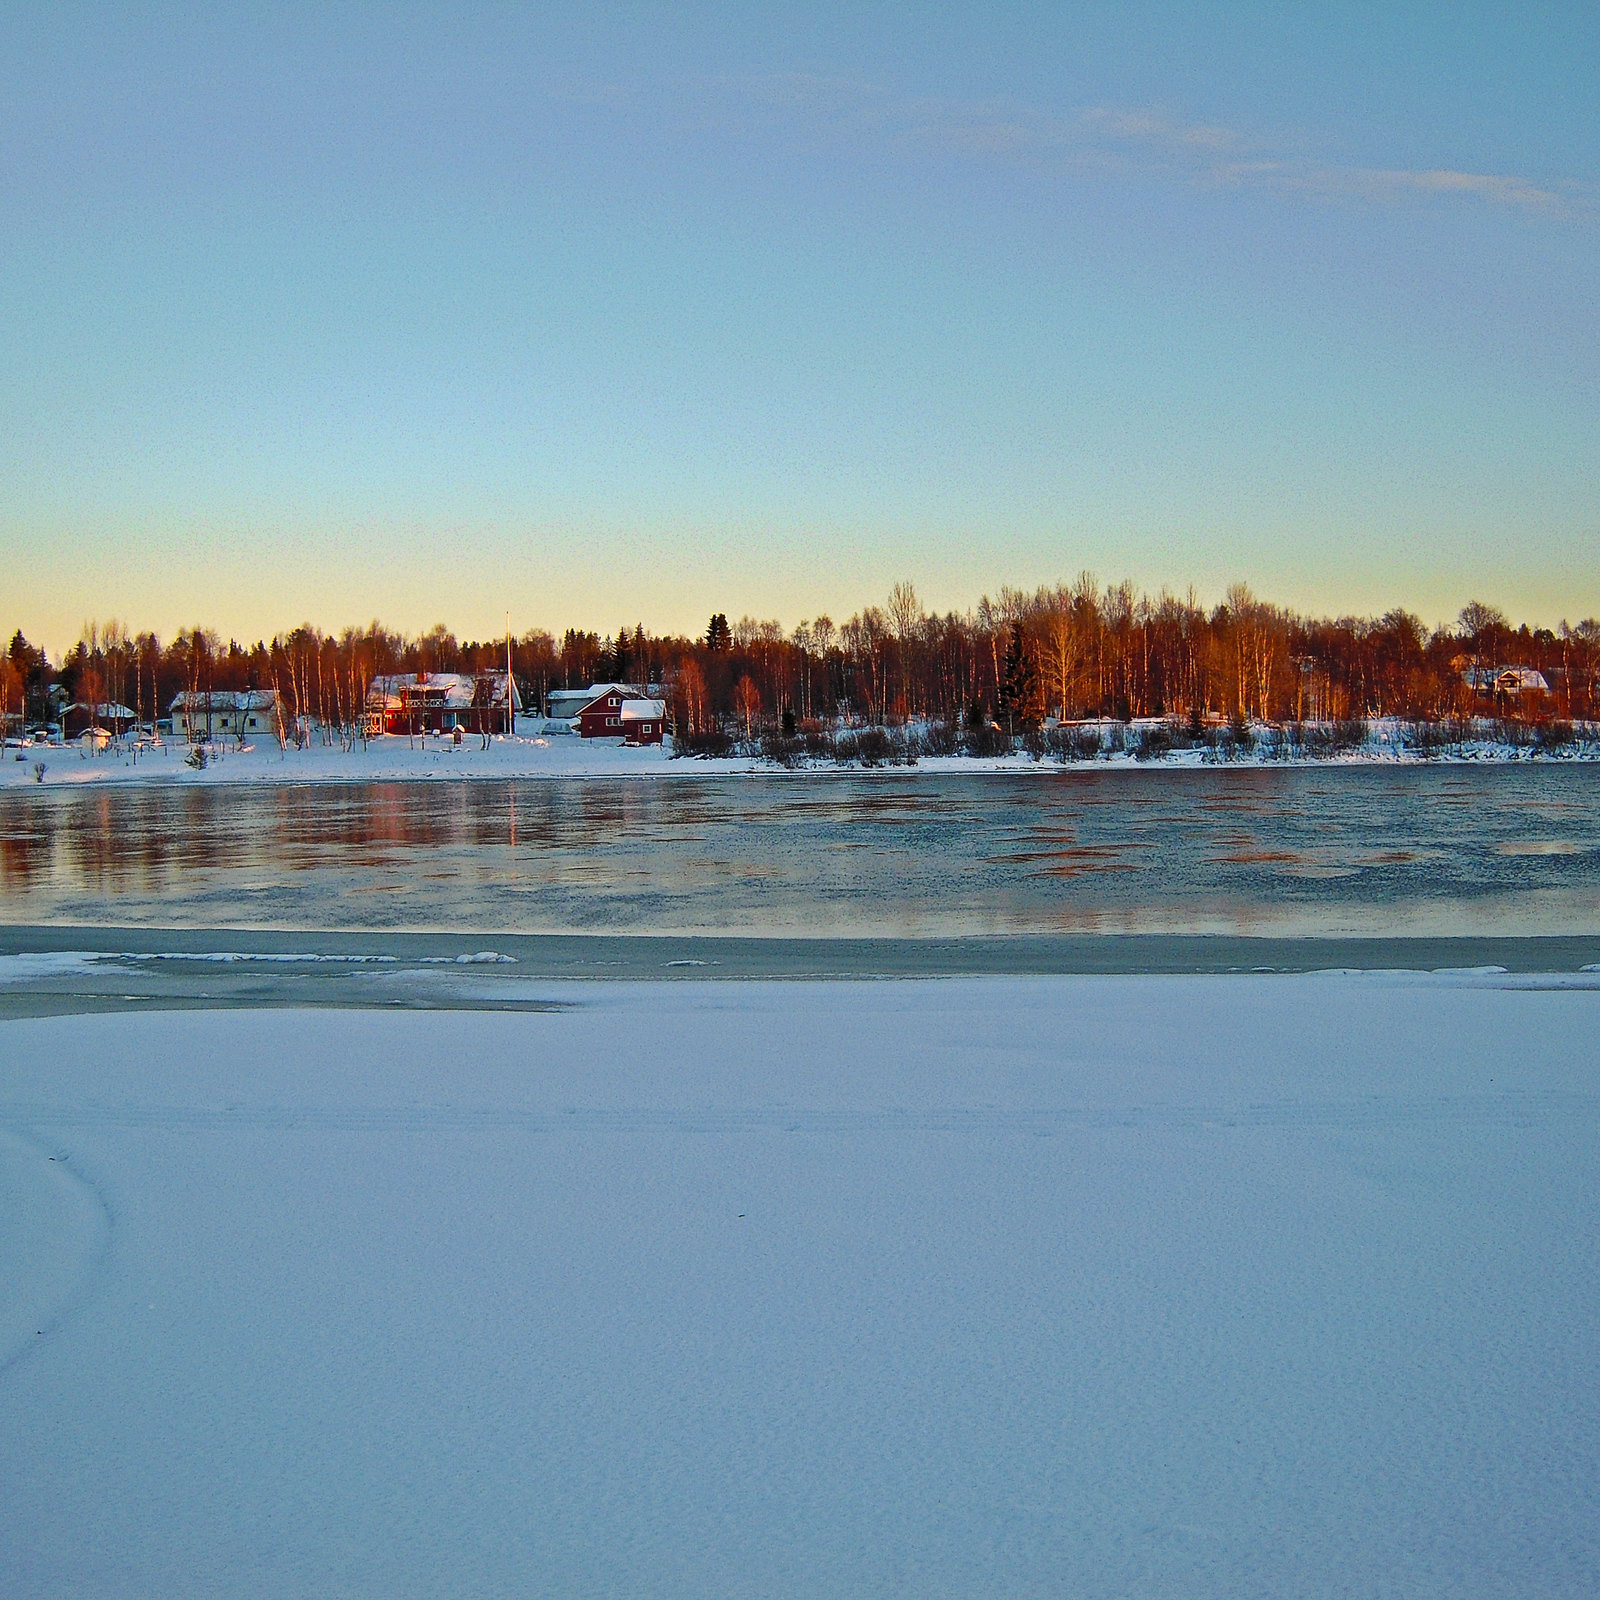 River Kitinen freezing over